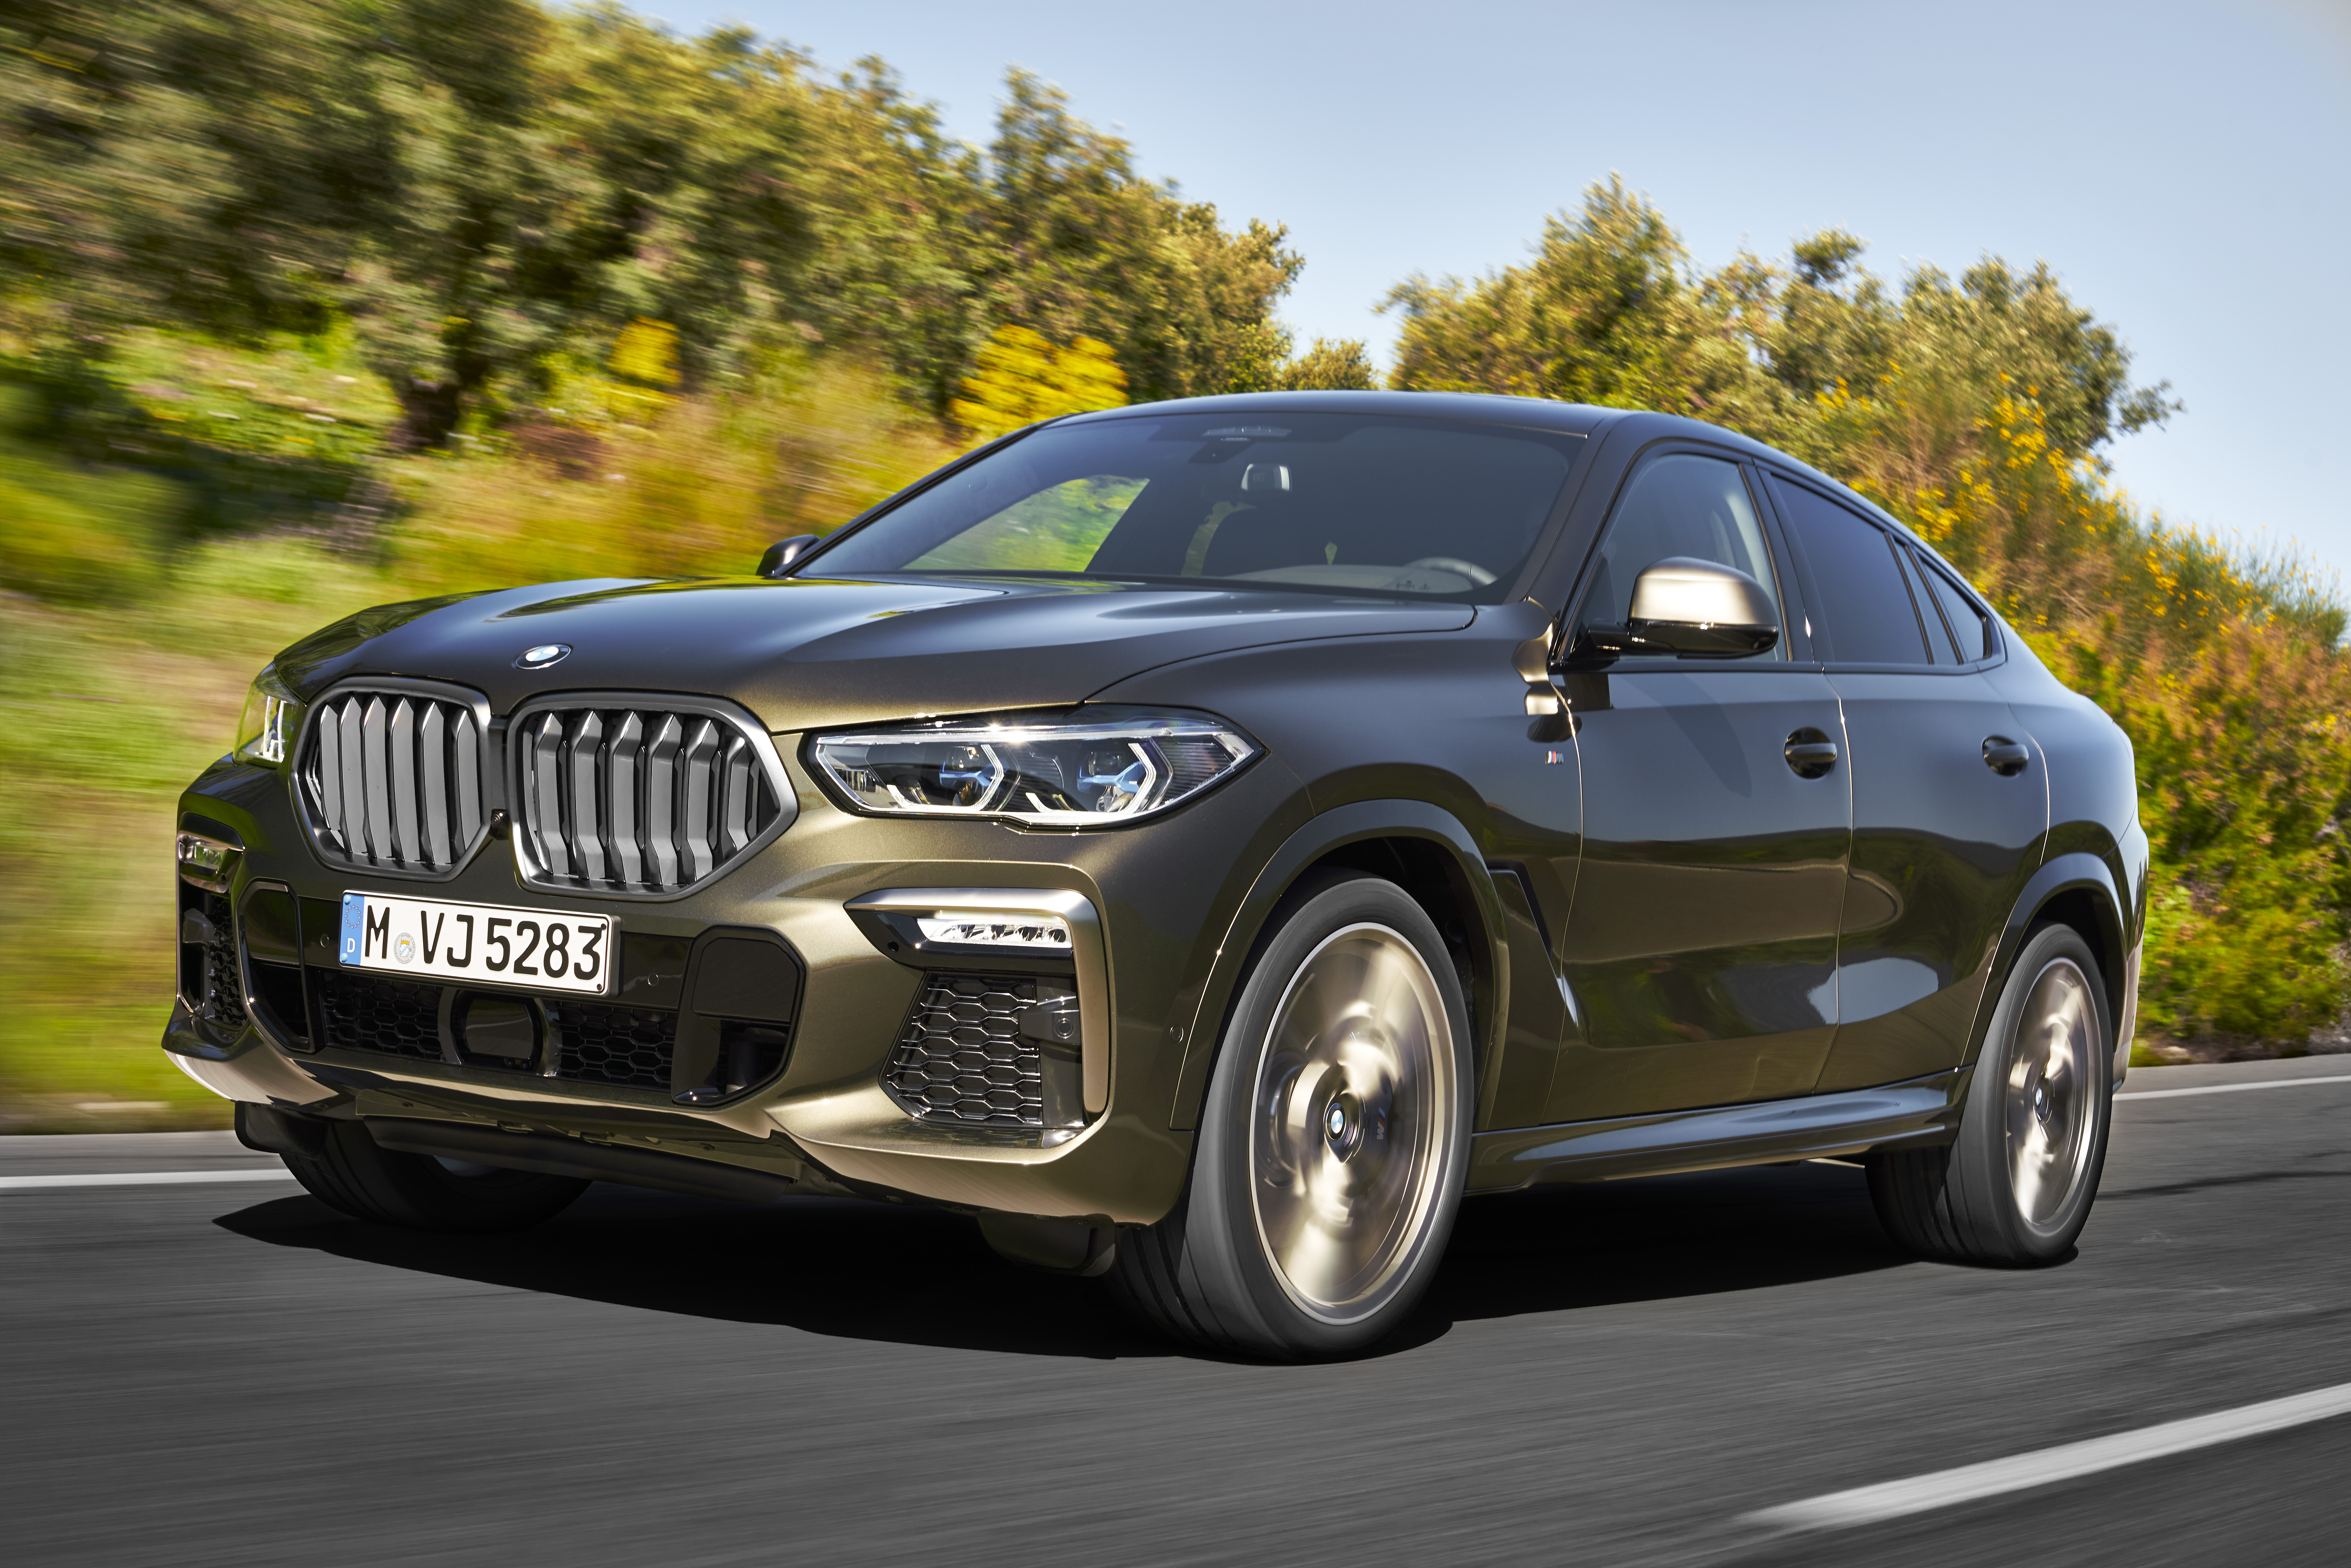 Bmw 2020 X6 Debuts Illuminated Grille Has Active Air Slats Too Repairer Driven Newsrepairer Driven News